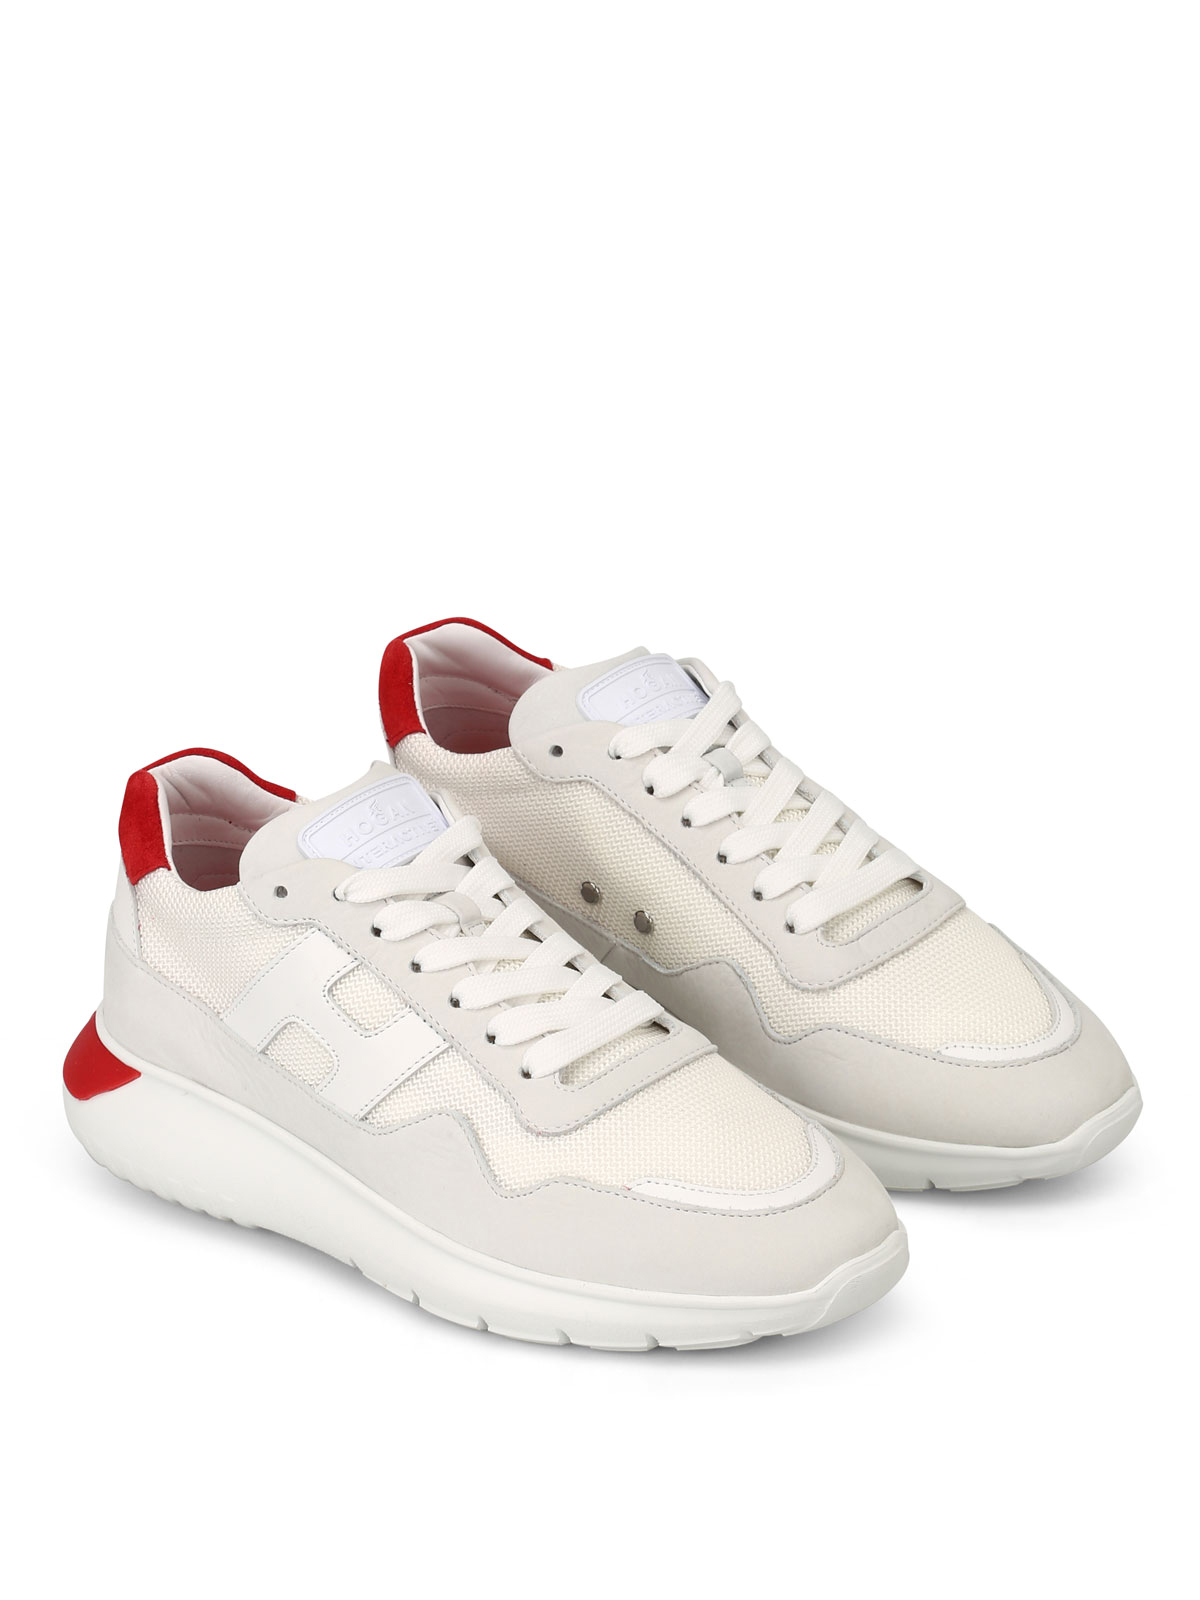 Hogan Interactive³ sneakers cheap sale high quality exclusive pick a best cheap price clearance footlocker pictures snTeLq